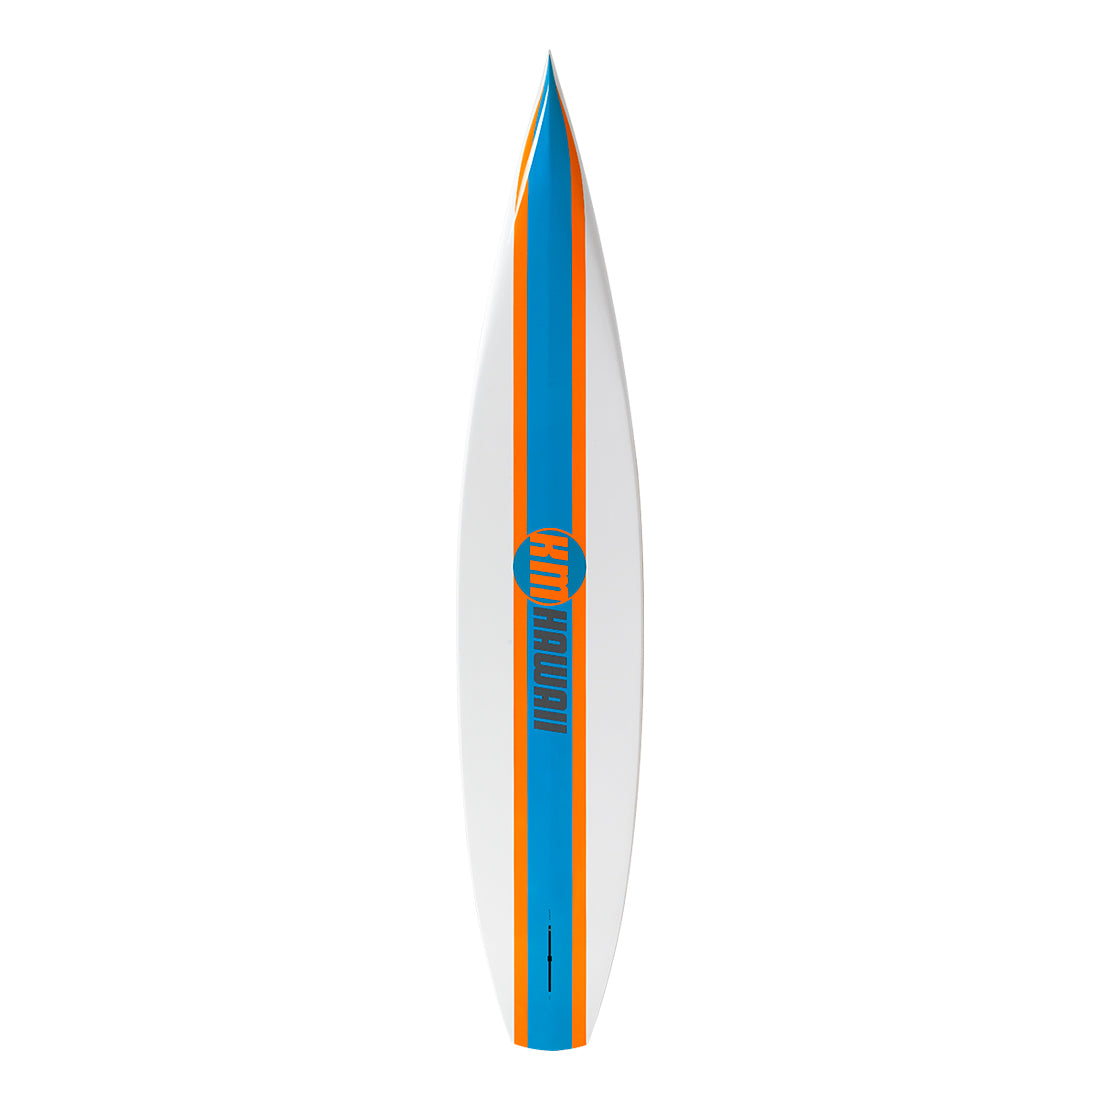 "KM Hawaii Compressor Tour - Blue-Orange - 14'0"" x 27.5"" Paddle Boards 4theoutdoors America US USA SUP outdoors"